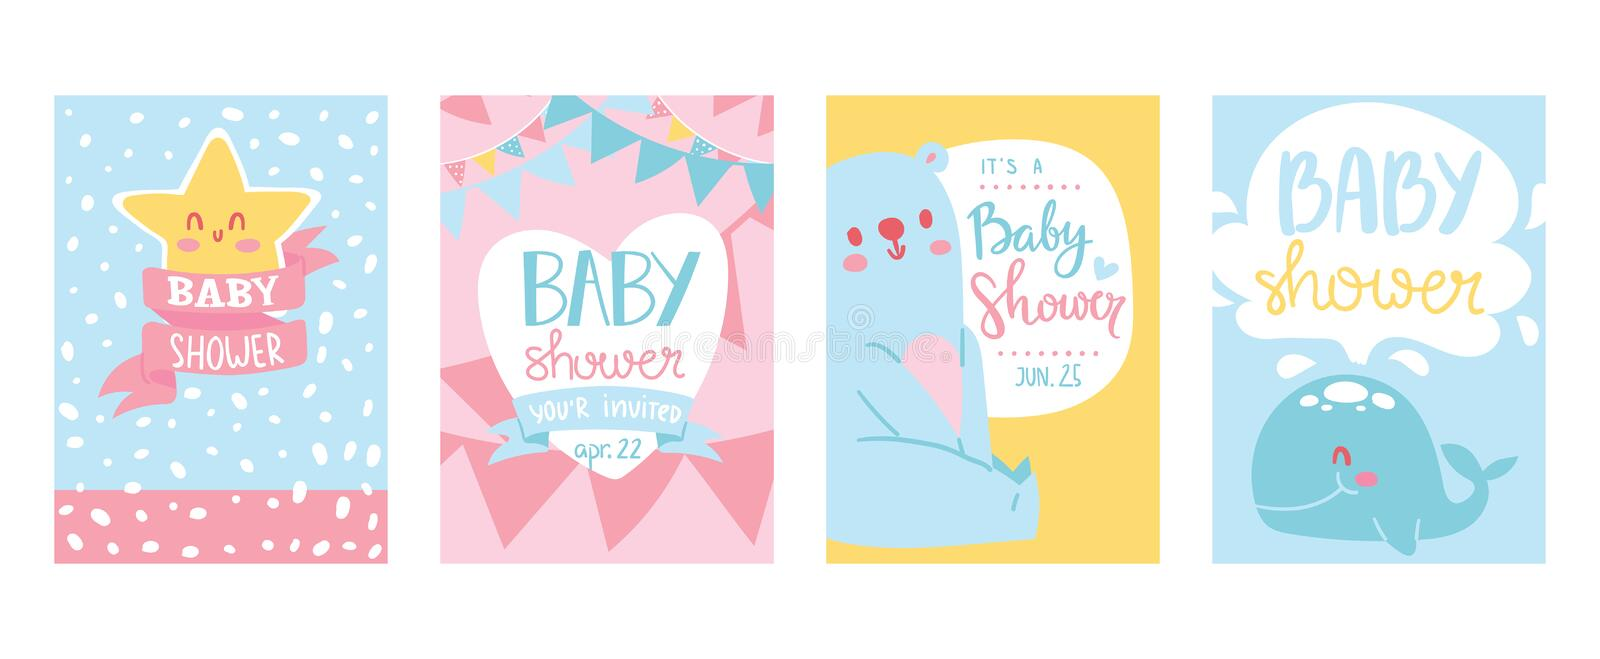 Baby shower cards vector illustration set. Cute invitation cards for newborn boy and girl party. Invitation greeting for royalty free illustration